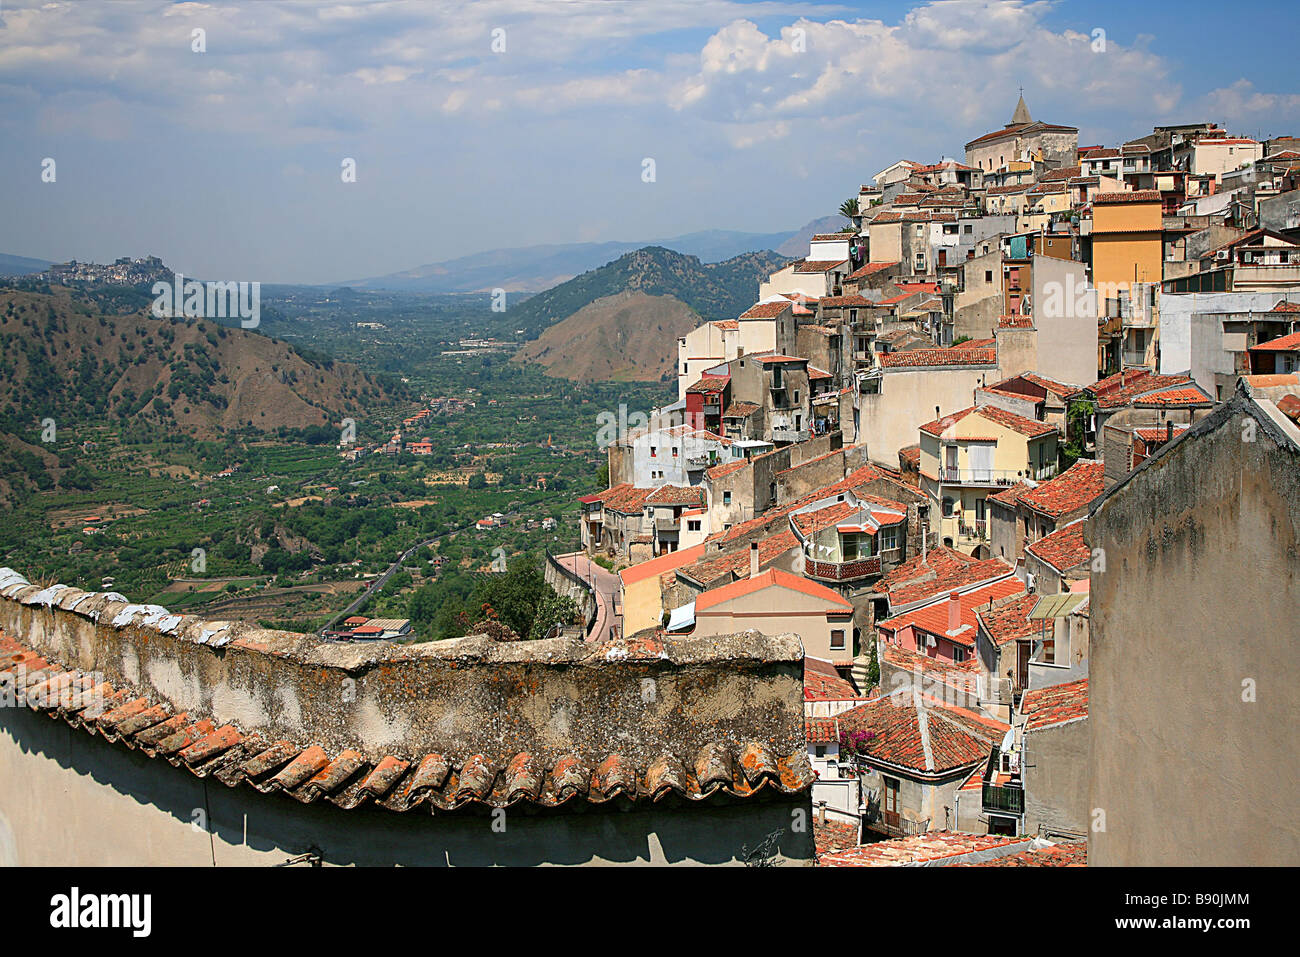 Landscape motta camastra sicily italy stock photos for Motta arredi catania